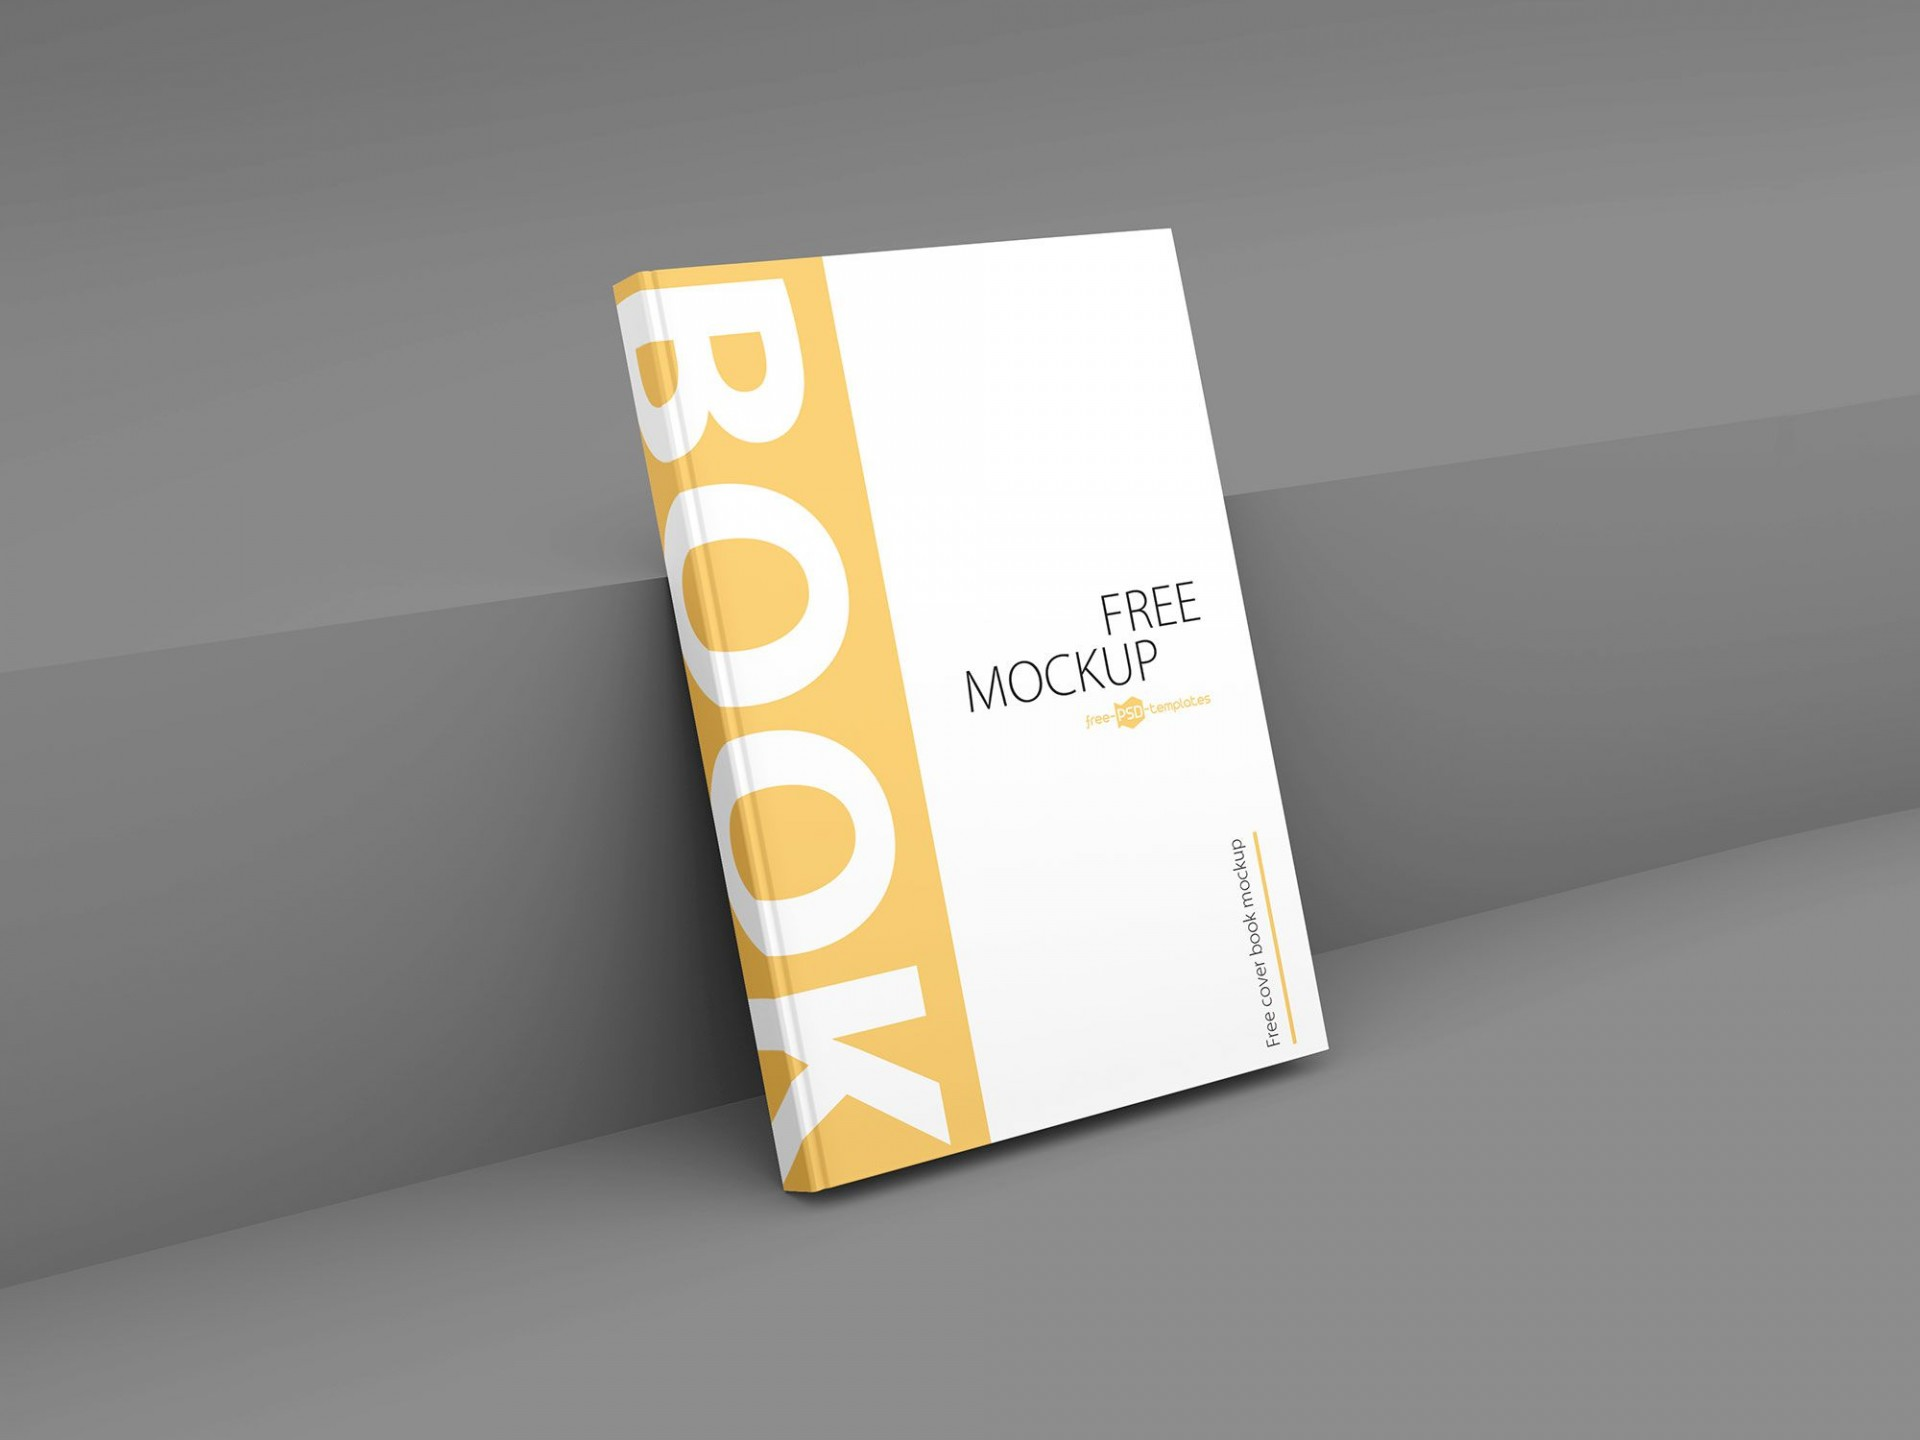 005 Top Free Download Book Cover Design Template Psd High Resolution 1920